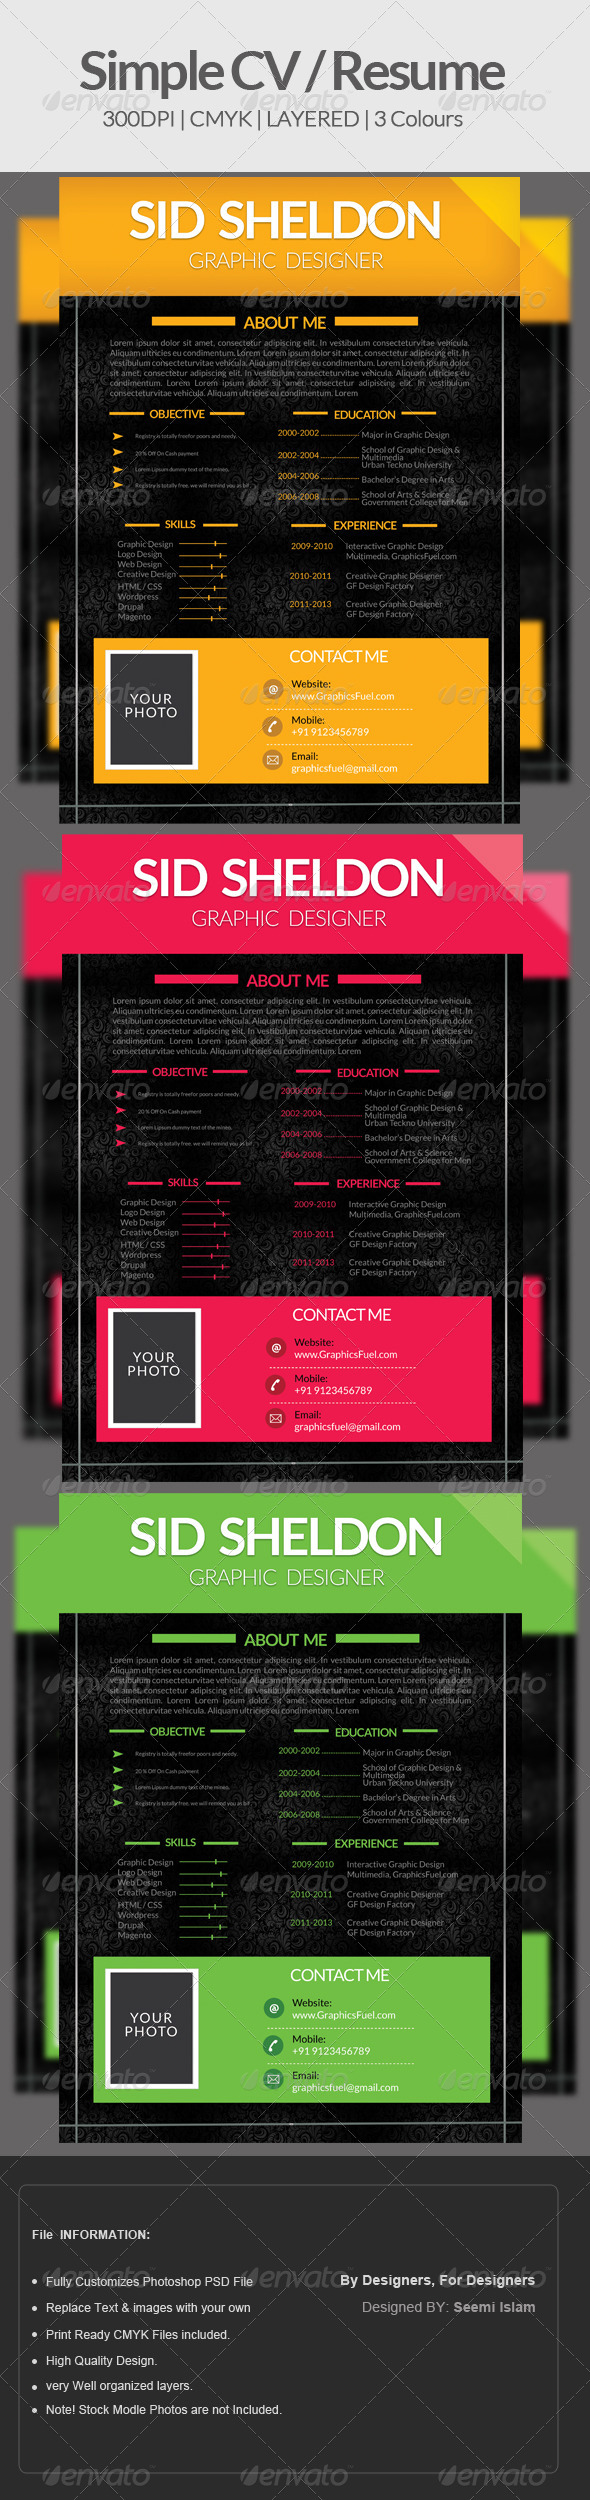 GraphicRiver Simple CV Resume 6517889